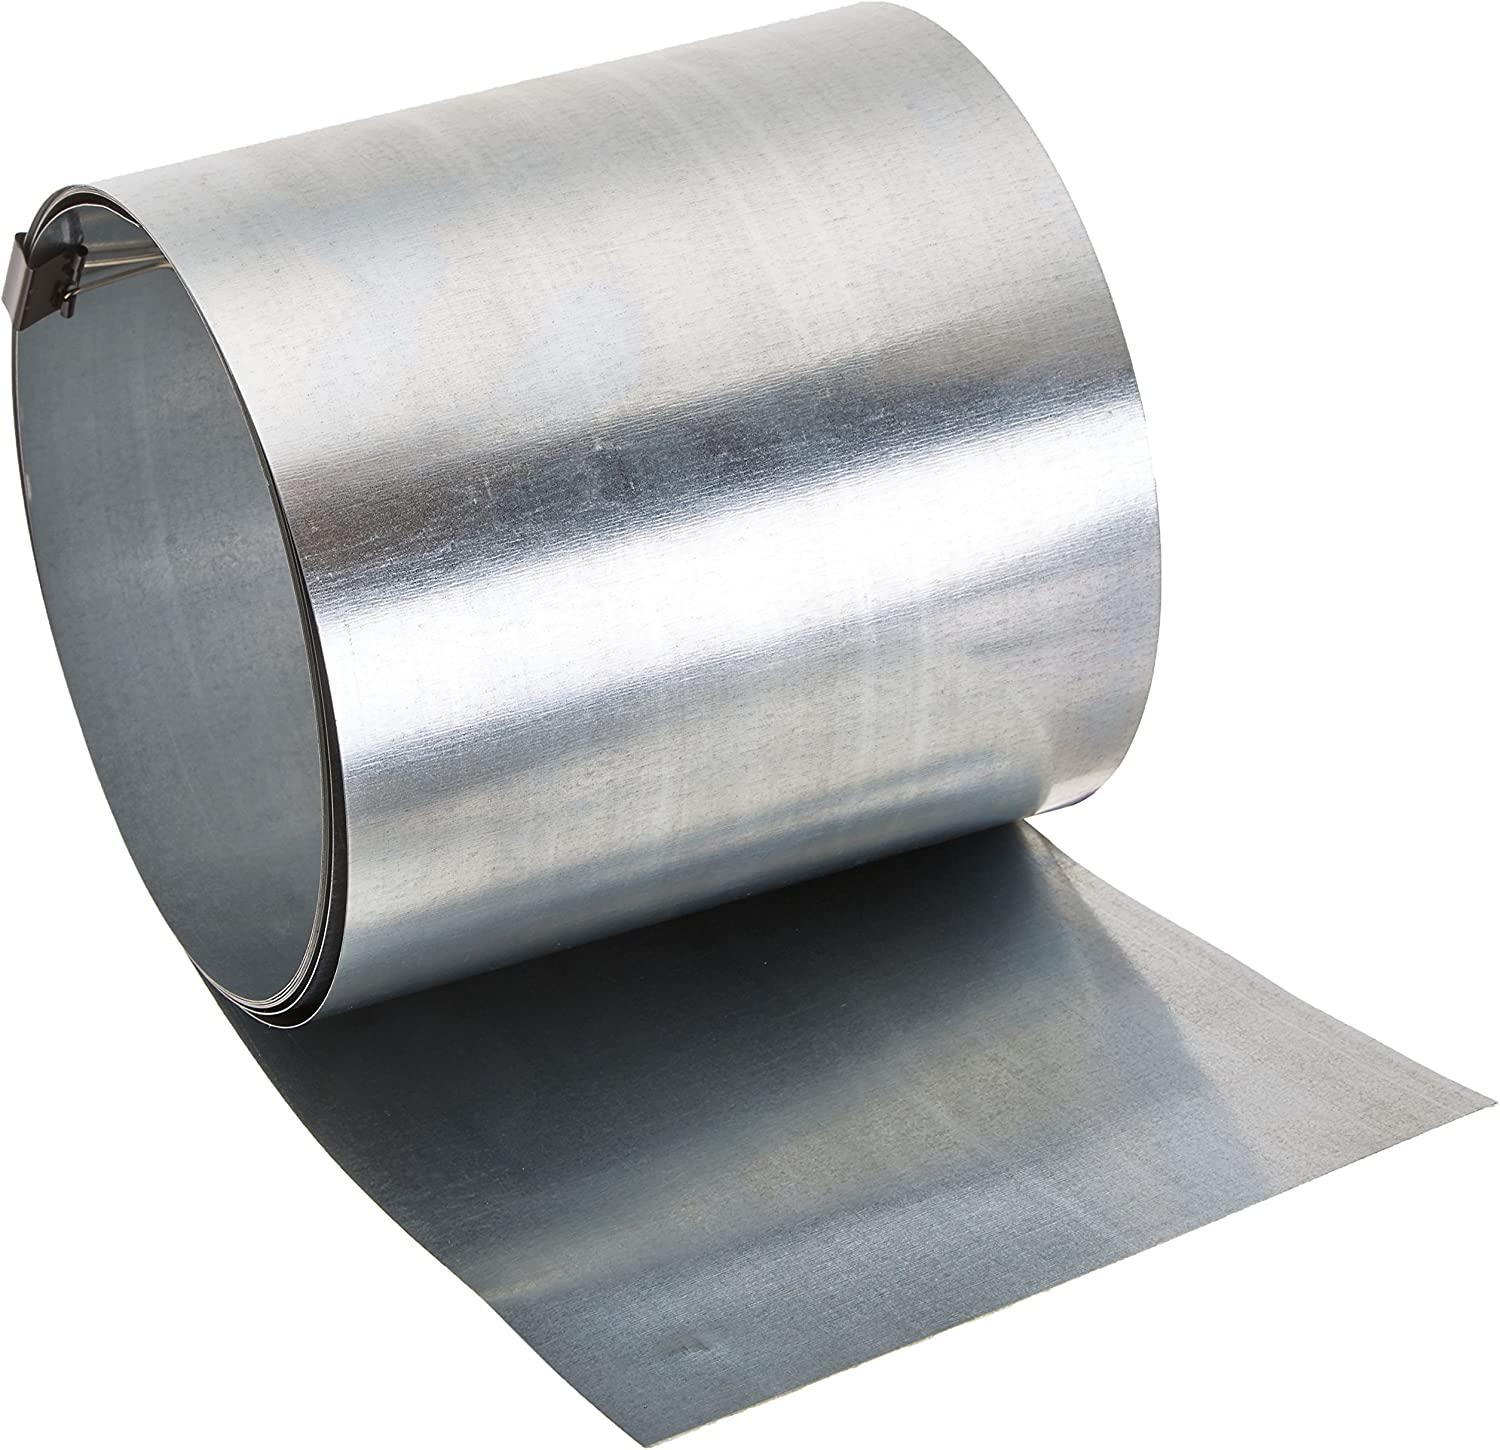 AMERIMAX HOME PRODUCTS 70406 6-Inch x 10-Feet Galvanized Flashing